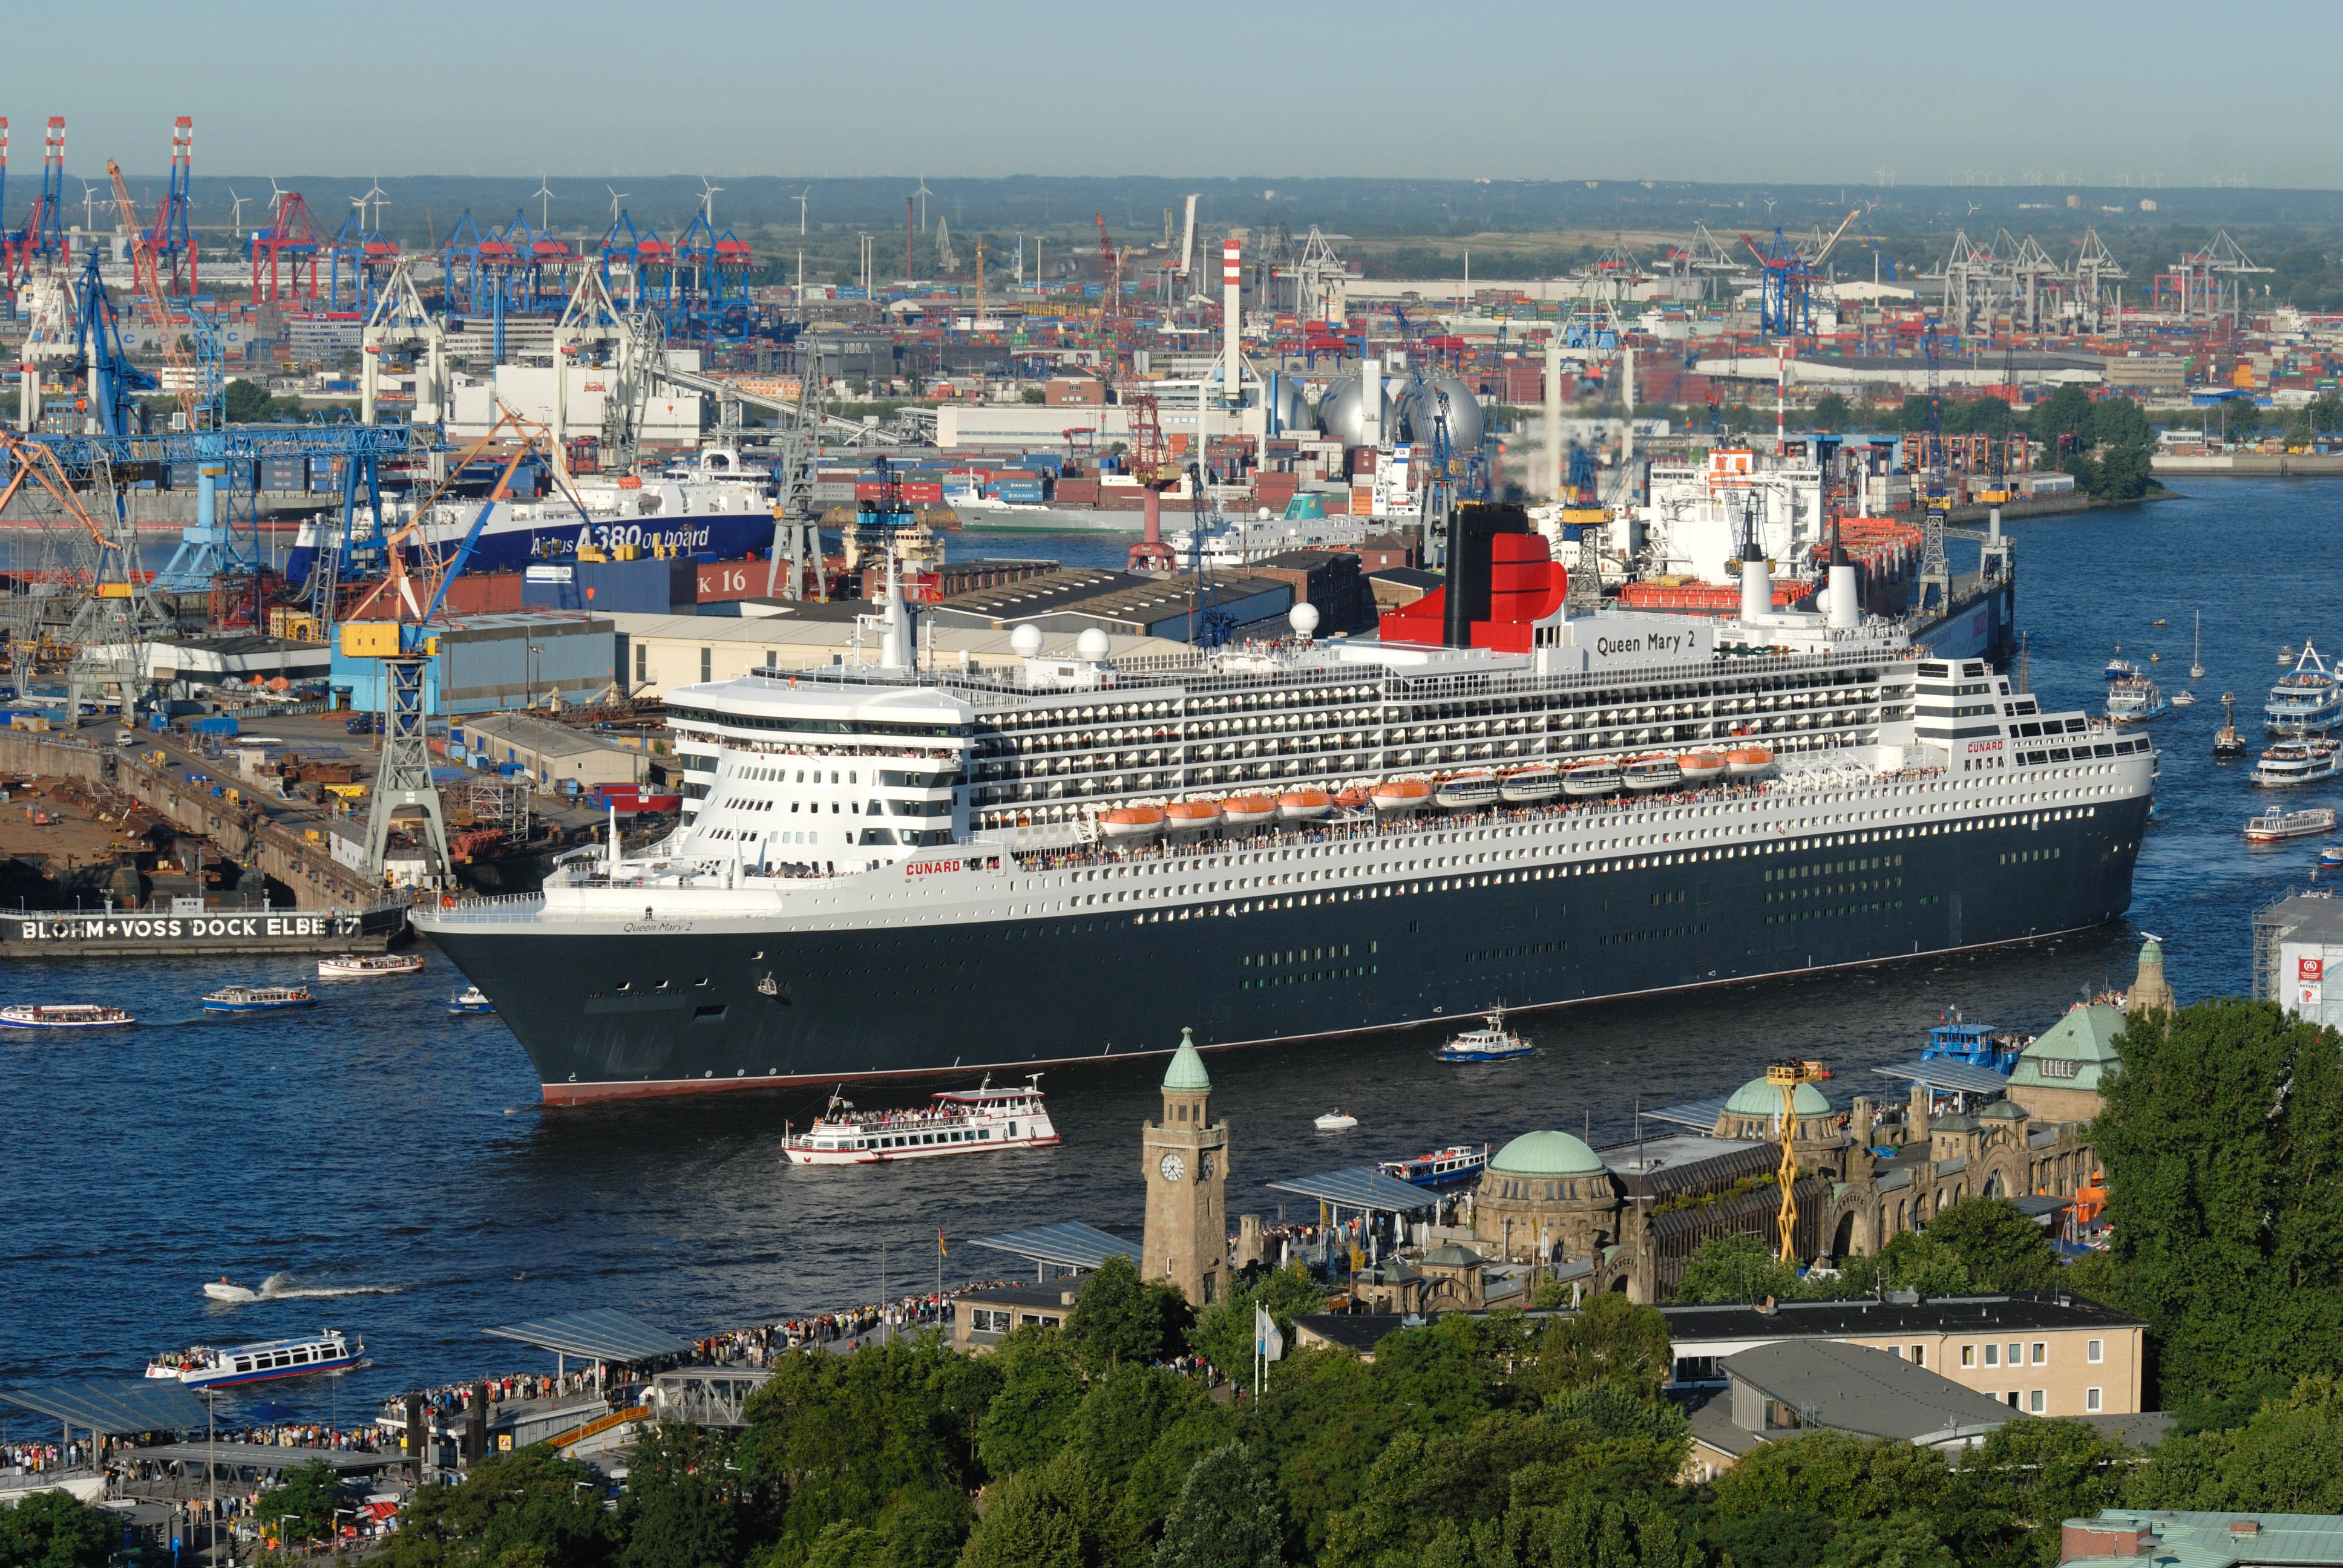 September Cruiseshipportal - Recruitment agencies for cruise ships in south africa